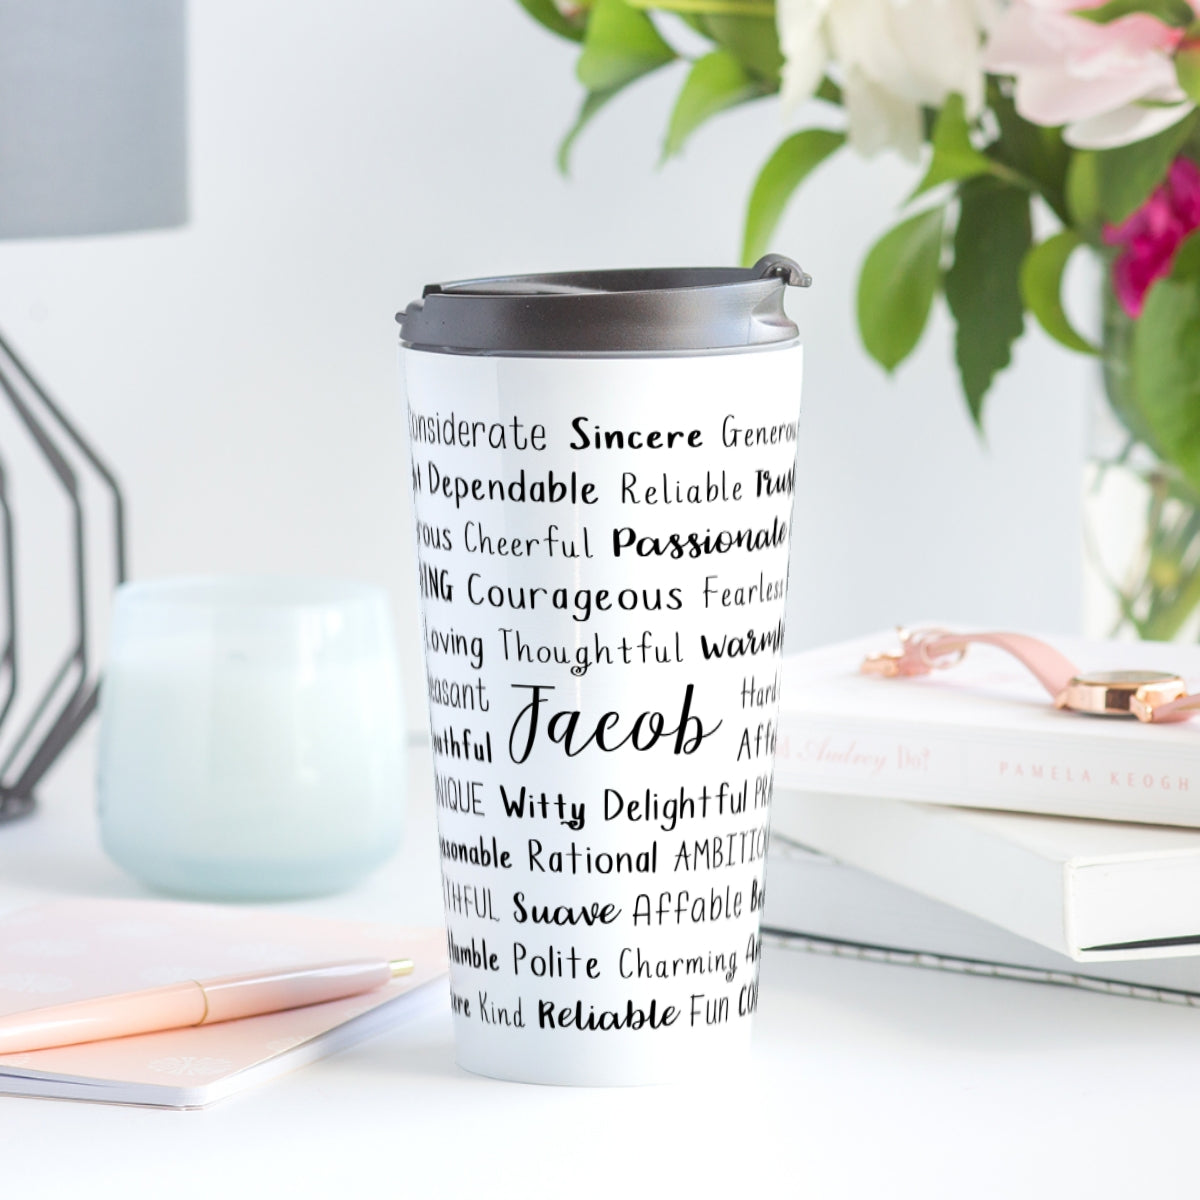 Jacob Travel Mug